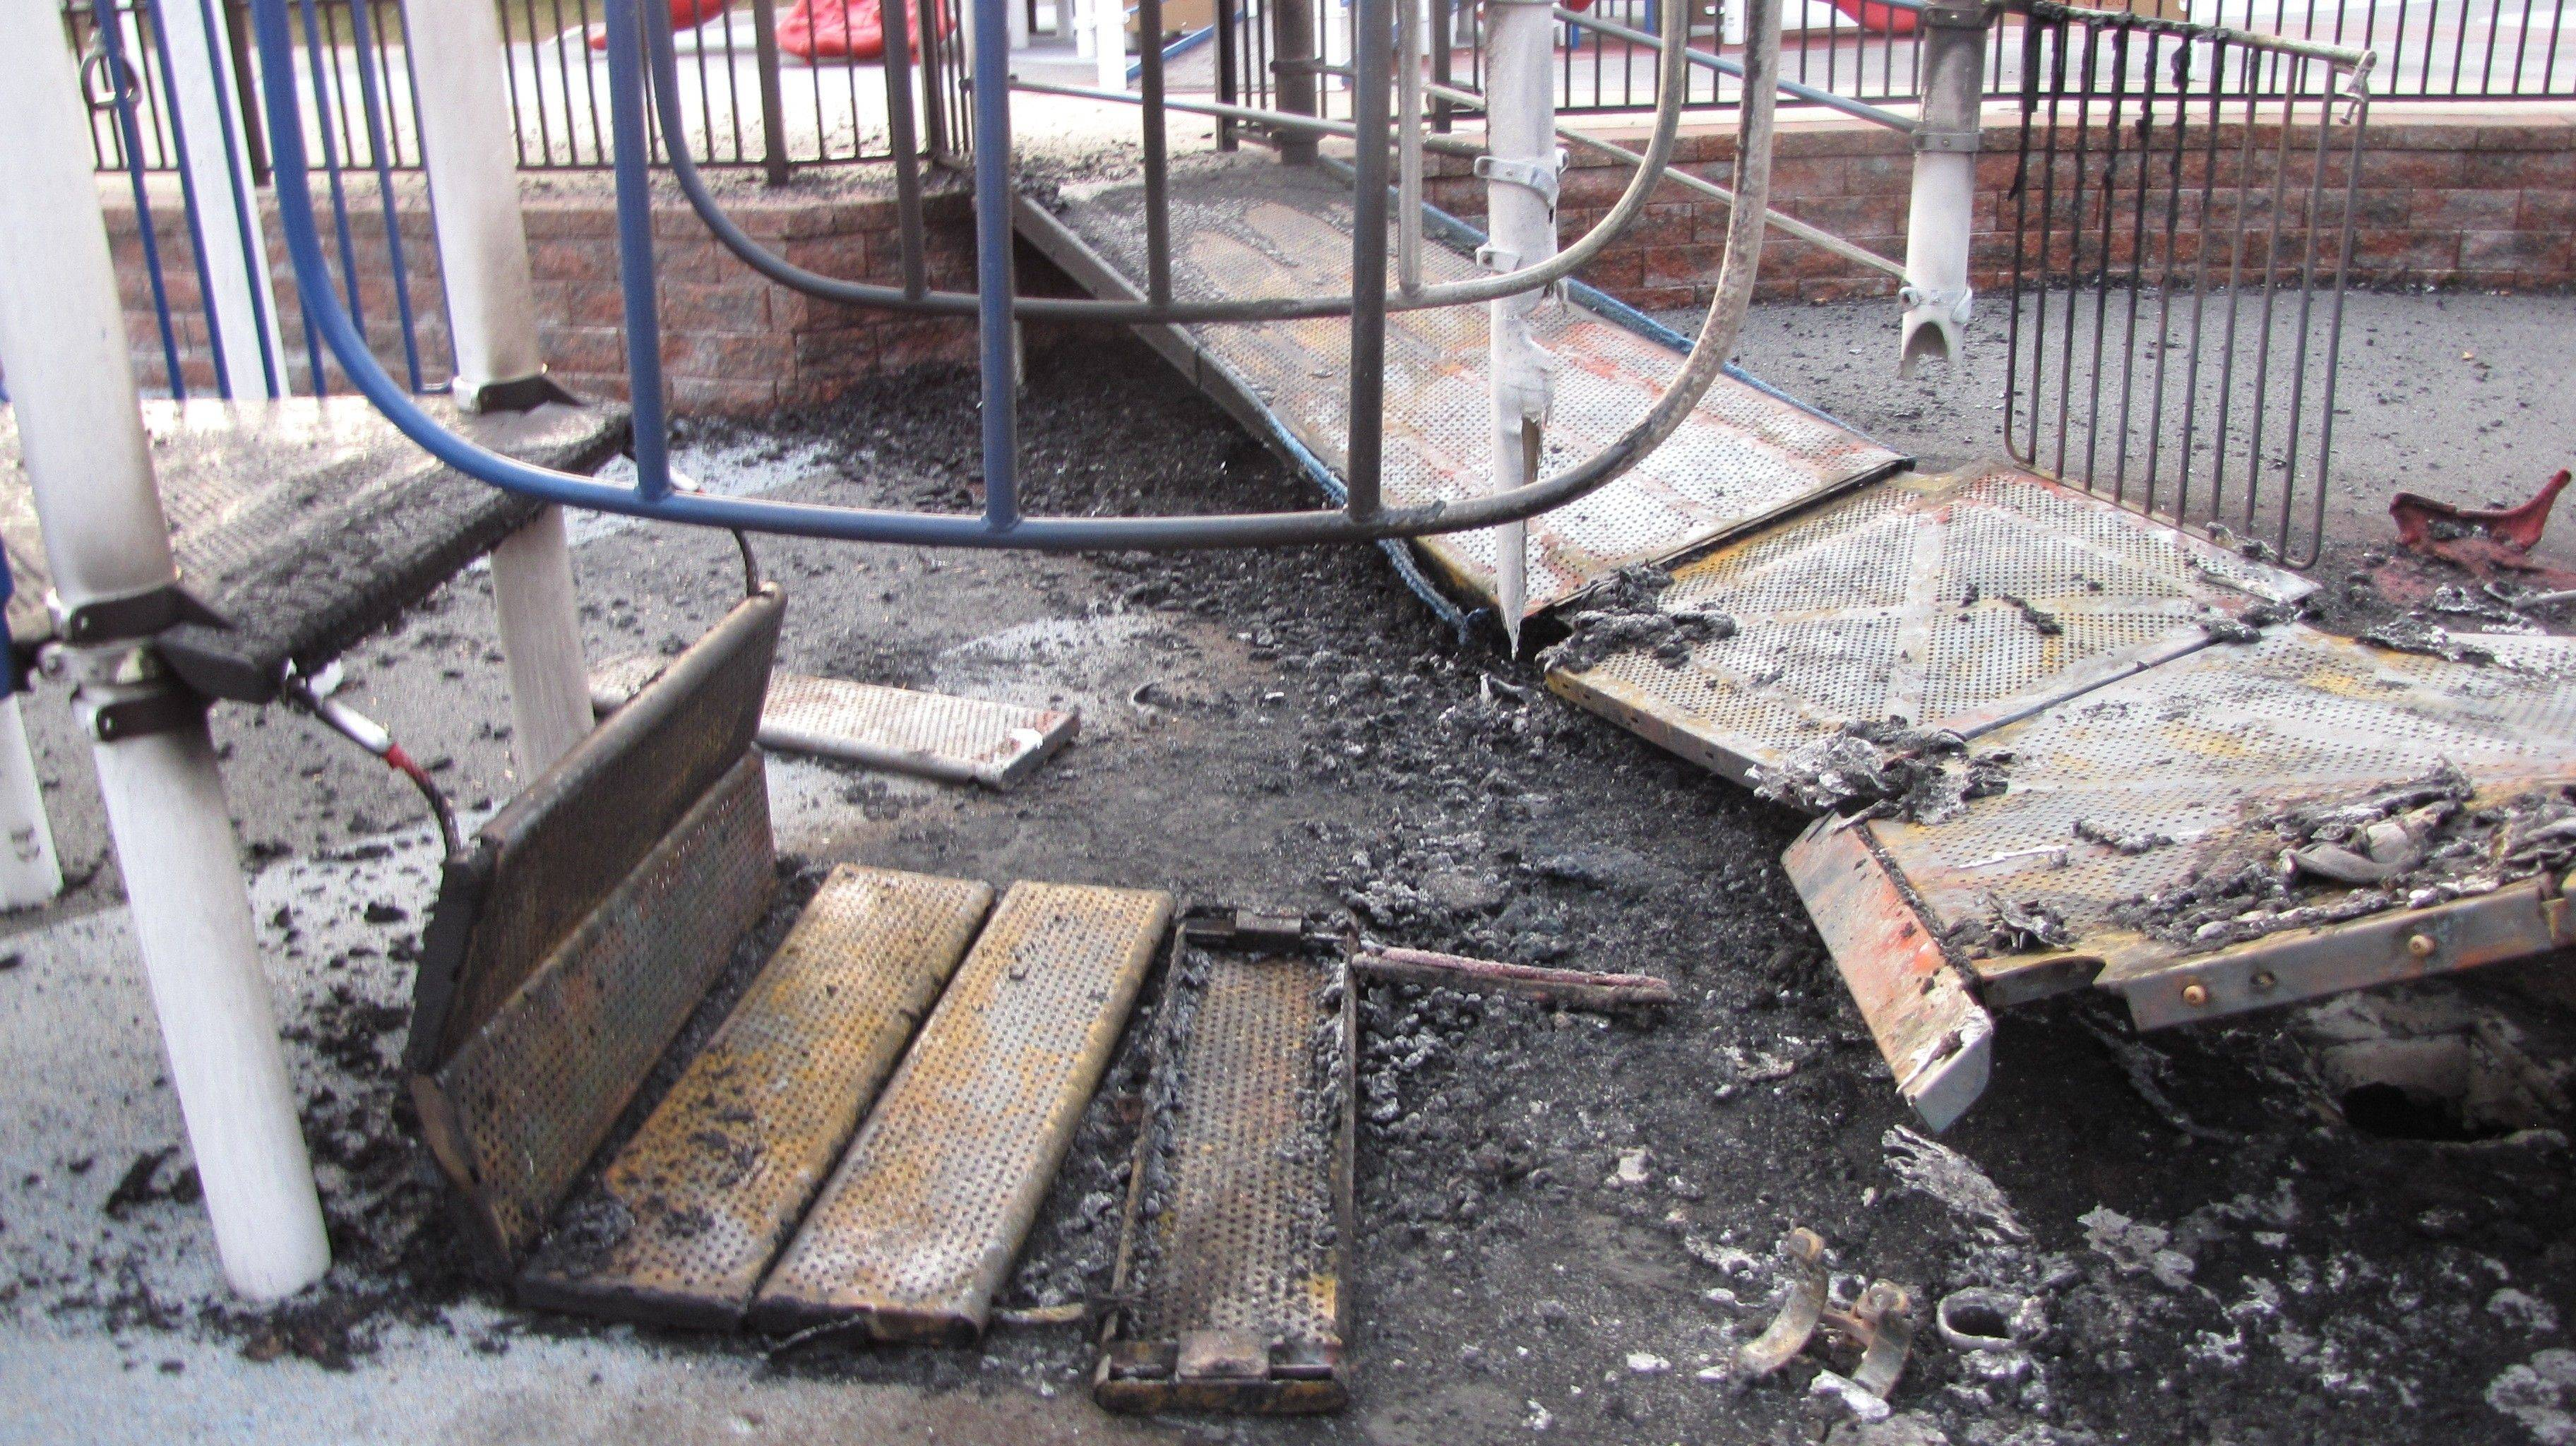 The Alcott Park's main playground was largely destroyed by an arson fire in November 2009.